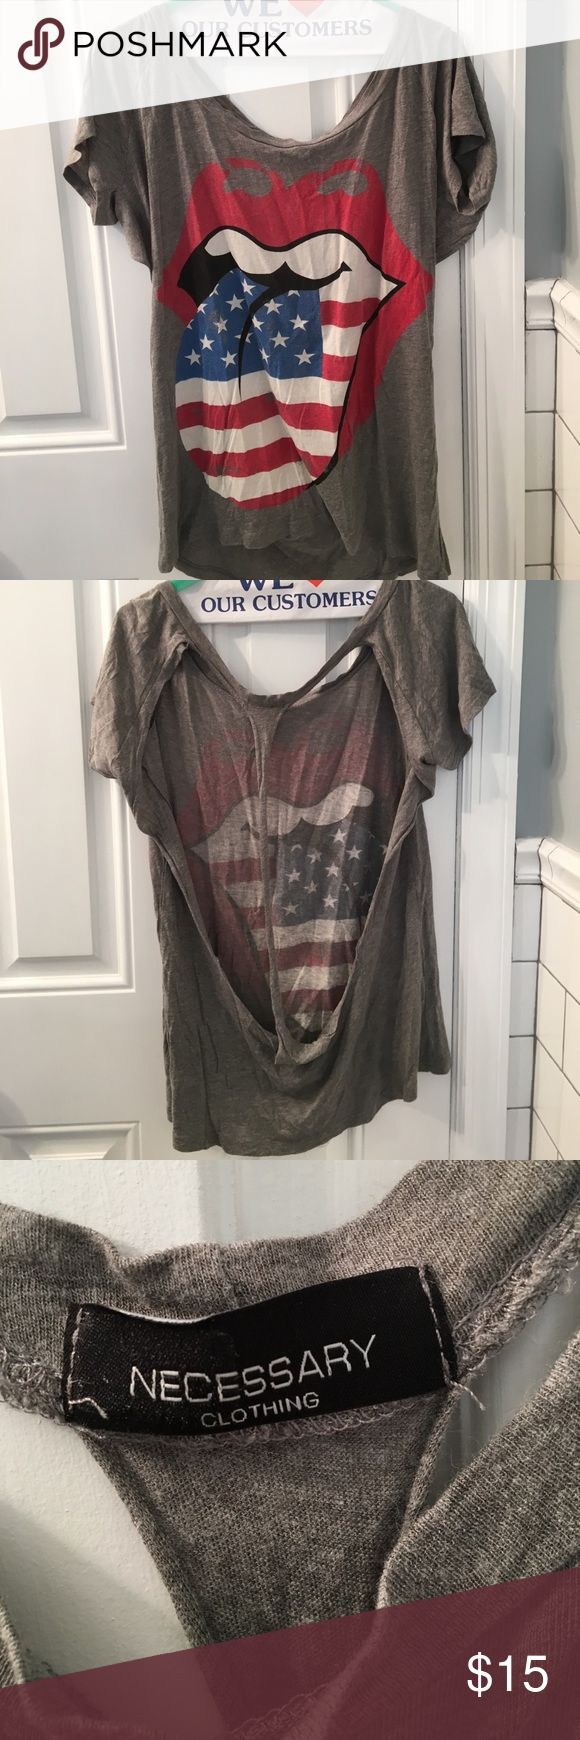 Necessary clothing short sleeve American flag rolling stone tongue short sleeve shirt. Open back-- bralette or bandeau can be worn under. Also a great bathing suit coverup with shorts. Soft and comfy shirt. Necessary Clothing Tops Tees - Short Sleeve